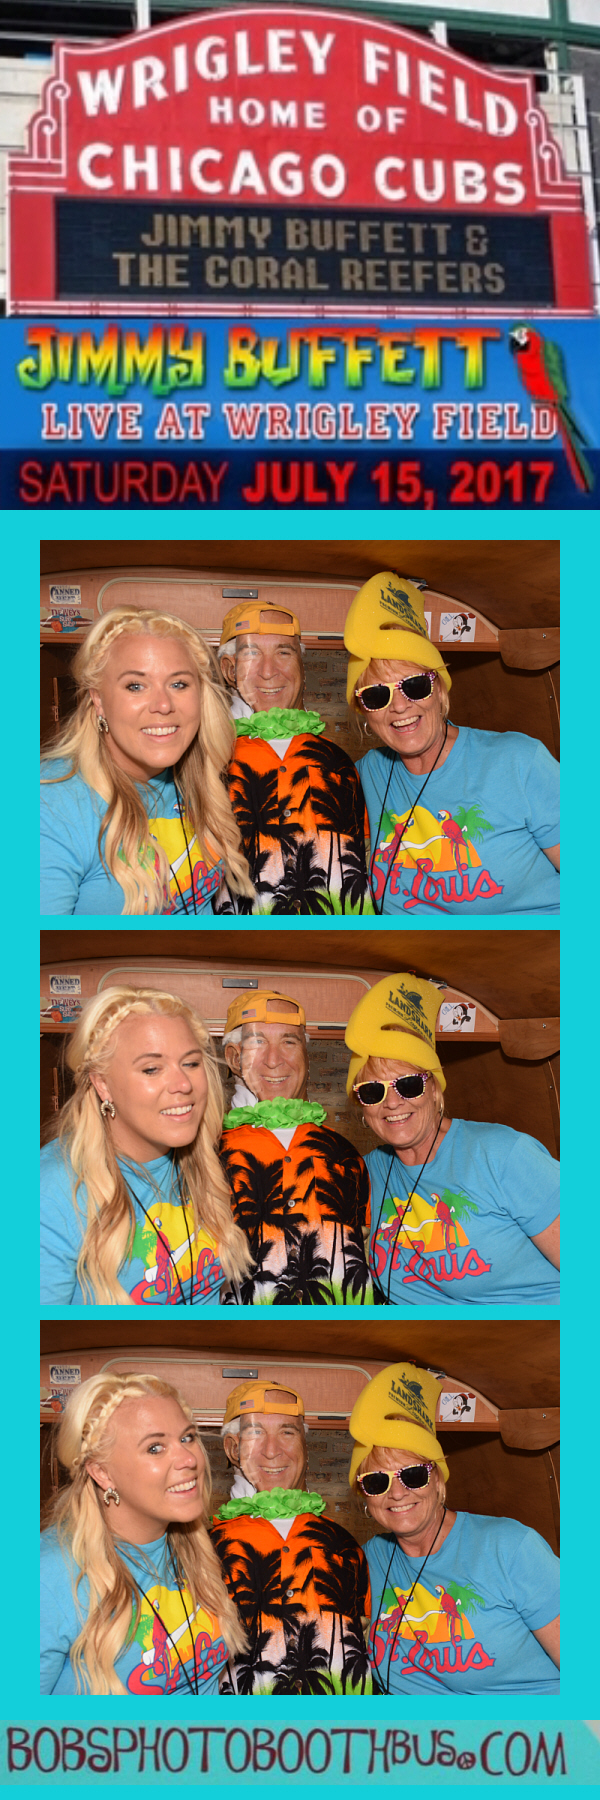 Jimmy Buffett final photo strip graphic_37.jpg